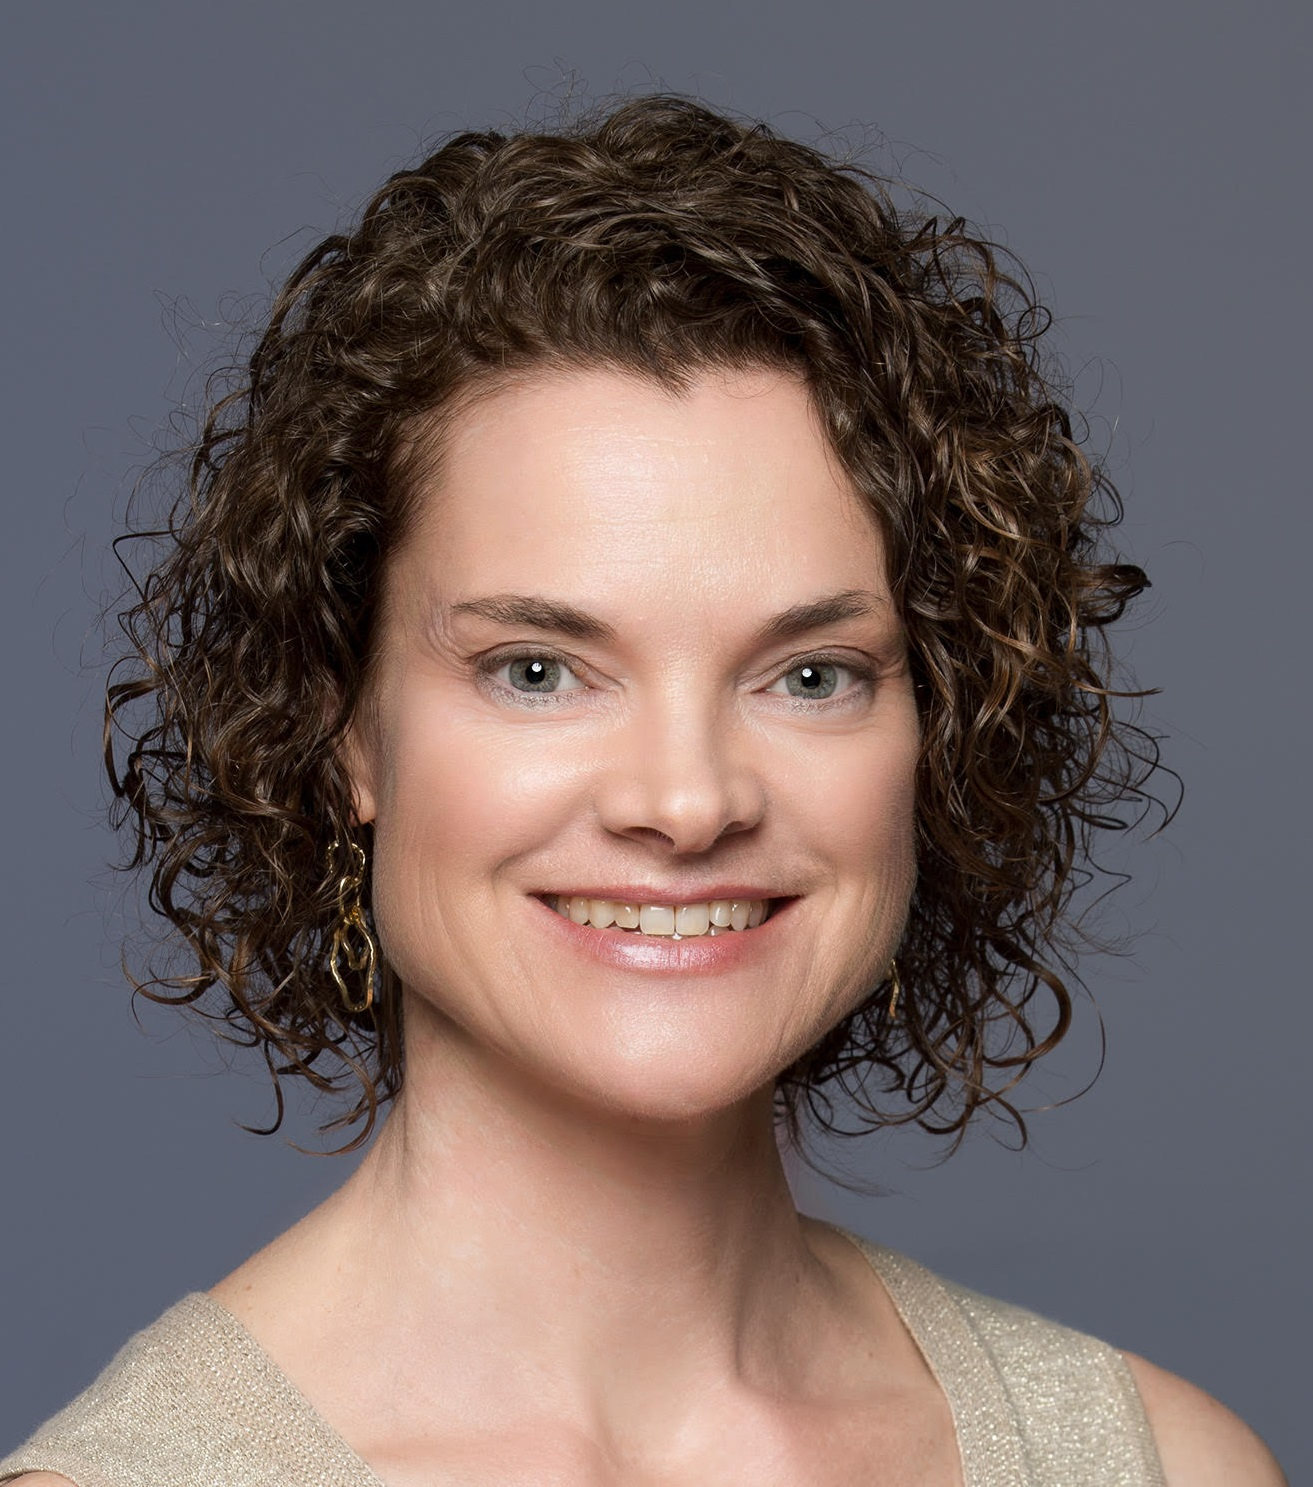 LISA MEDLEY, MA, CMT    Sustainable Wellbeing Lifestyle & Body Relationship Mentor